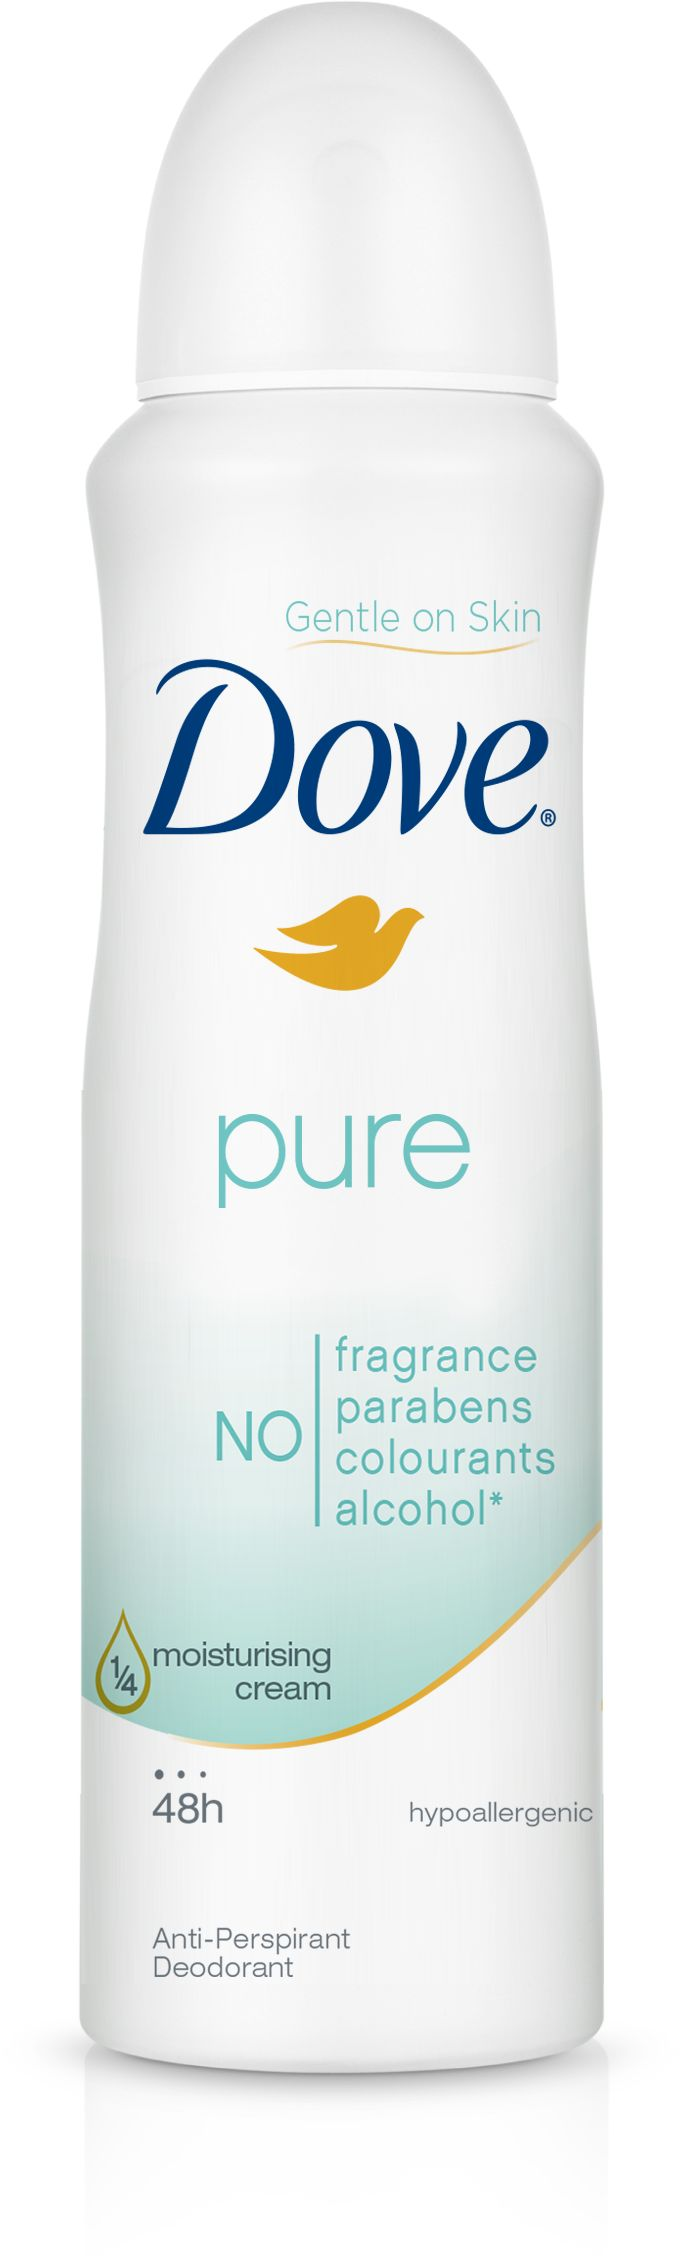 Dove Pure Deodorant Aerosol is free of parabens, fragrance, colourants and alcohol to contain only the essential ingredients to keep underarms feeling dry and lo...